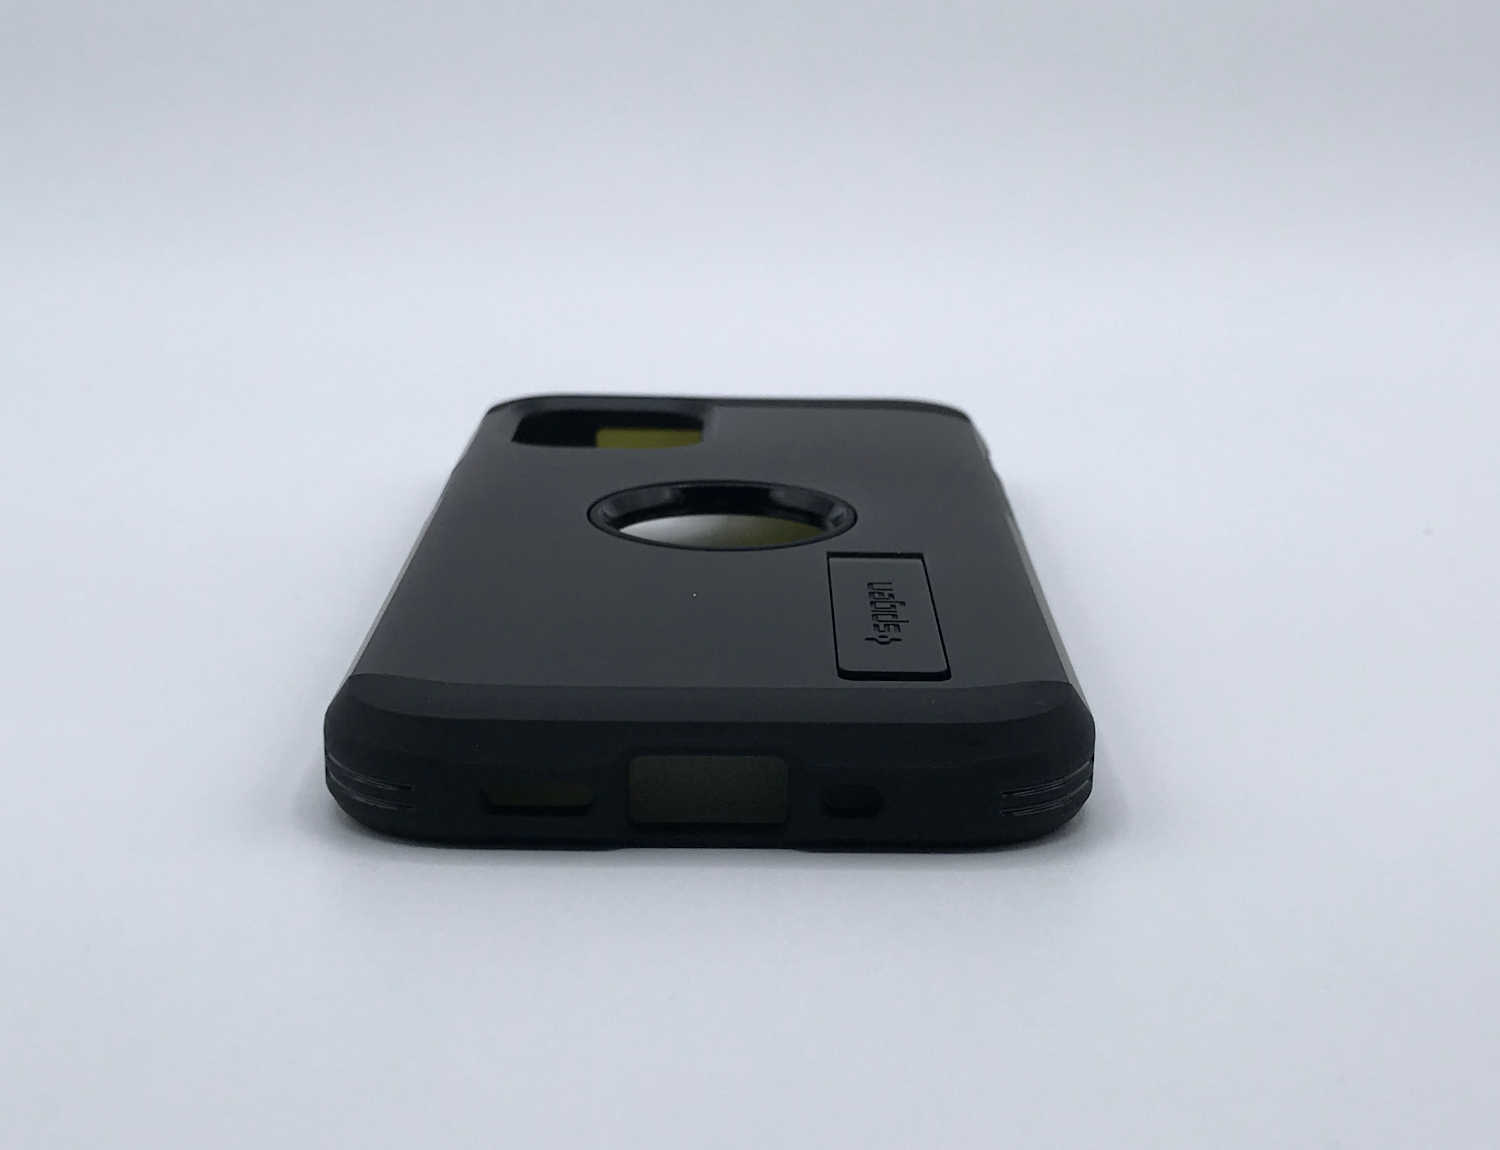 Aperçu avant test de la coque Spigen Tough Armor pour iPhone 12 mini